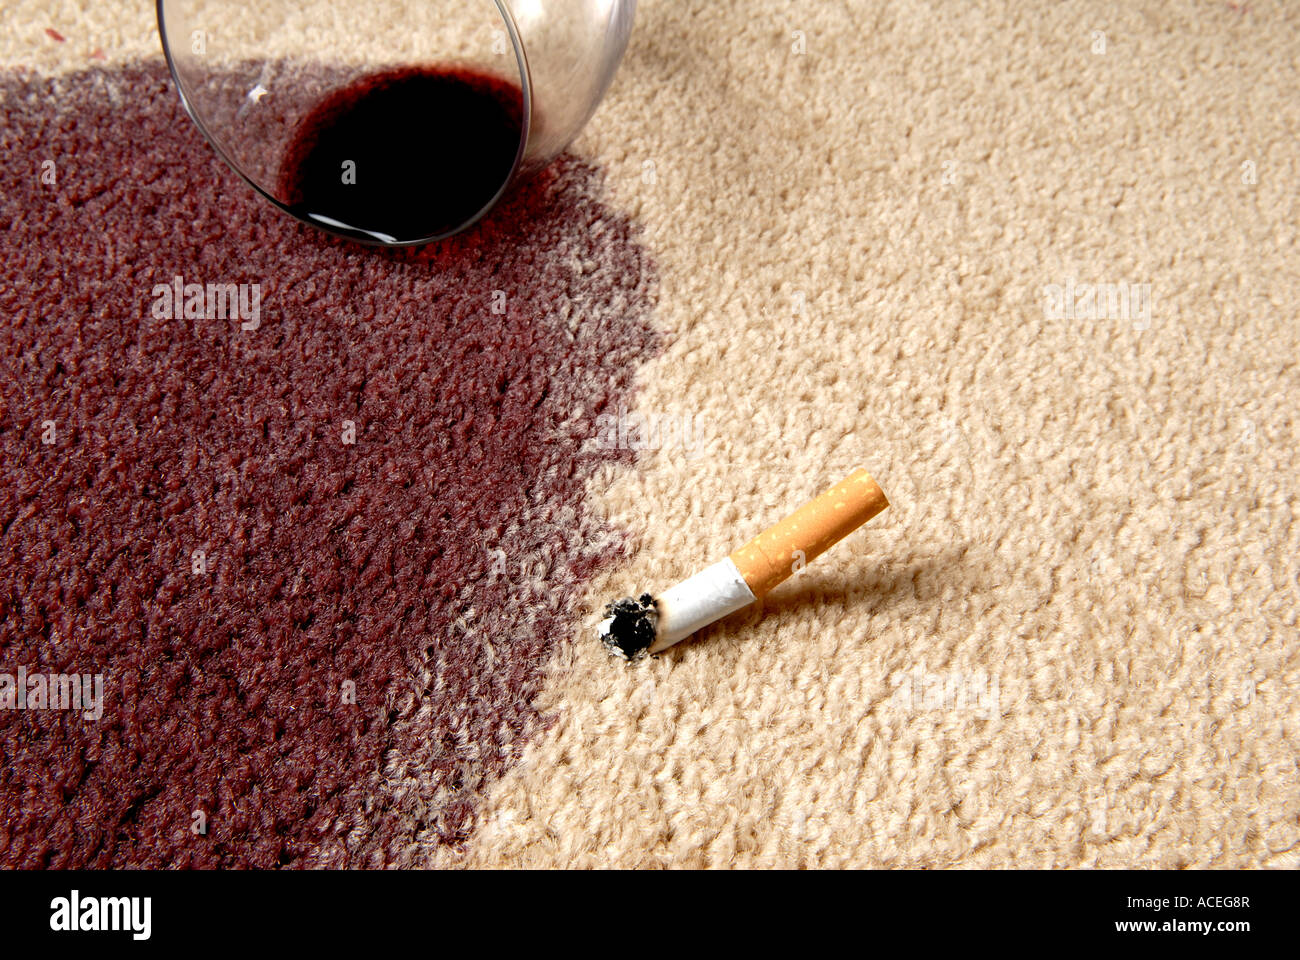 red wine and cigarette on carpet